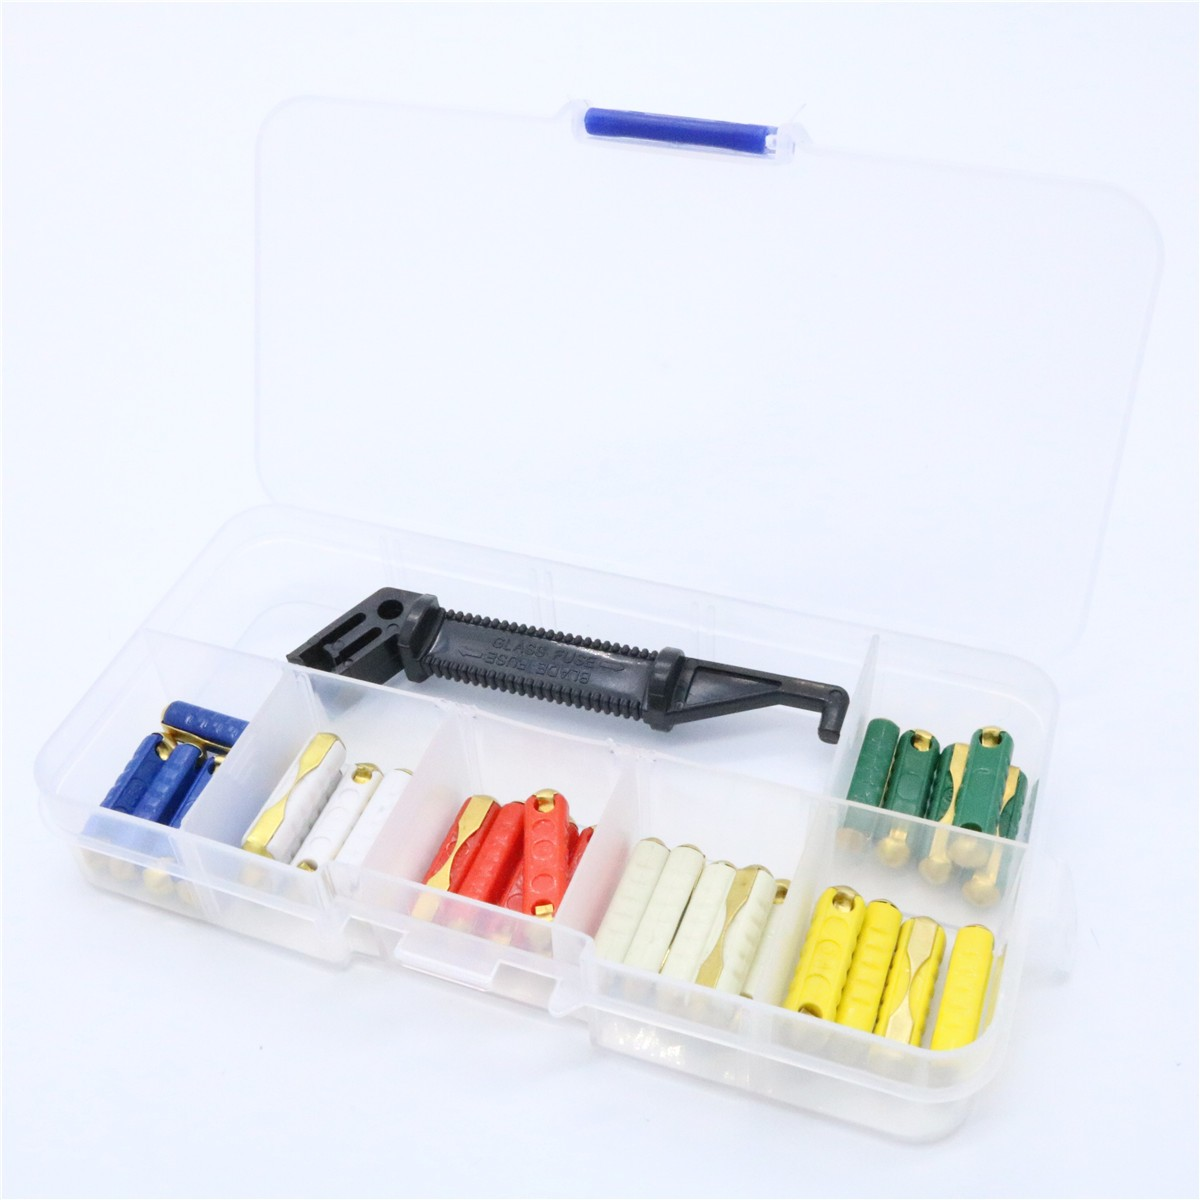 hight resolution of 32v european continental car fuse kit fuse puller plastic box assortment auto car accessories accesorios automovil in fuses from automobiles motorcycles